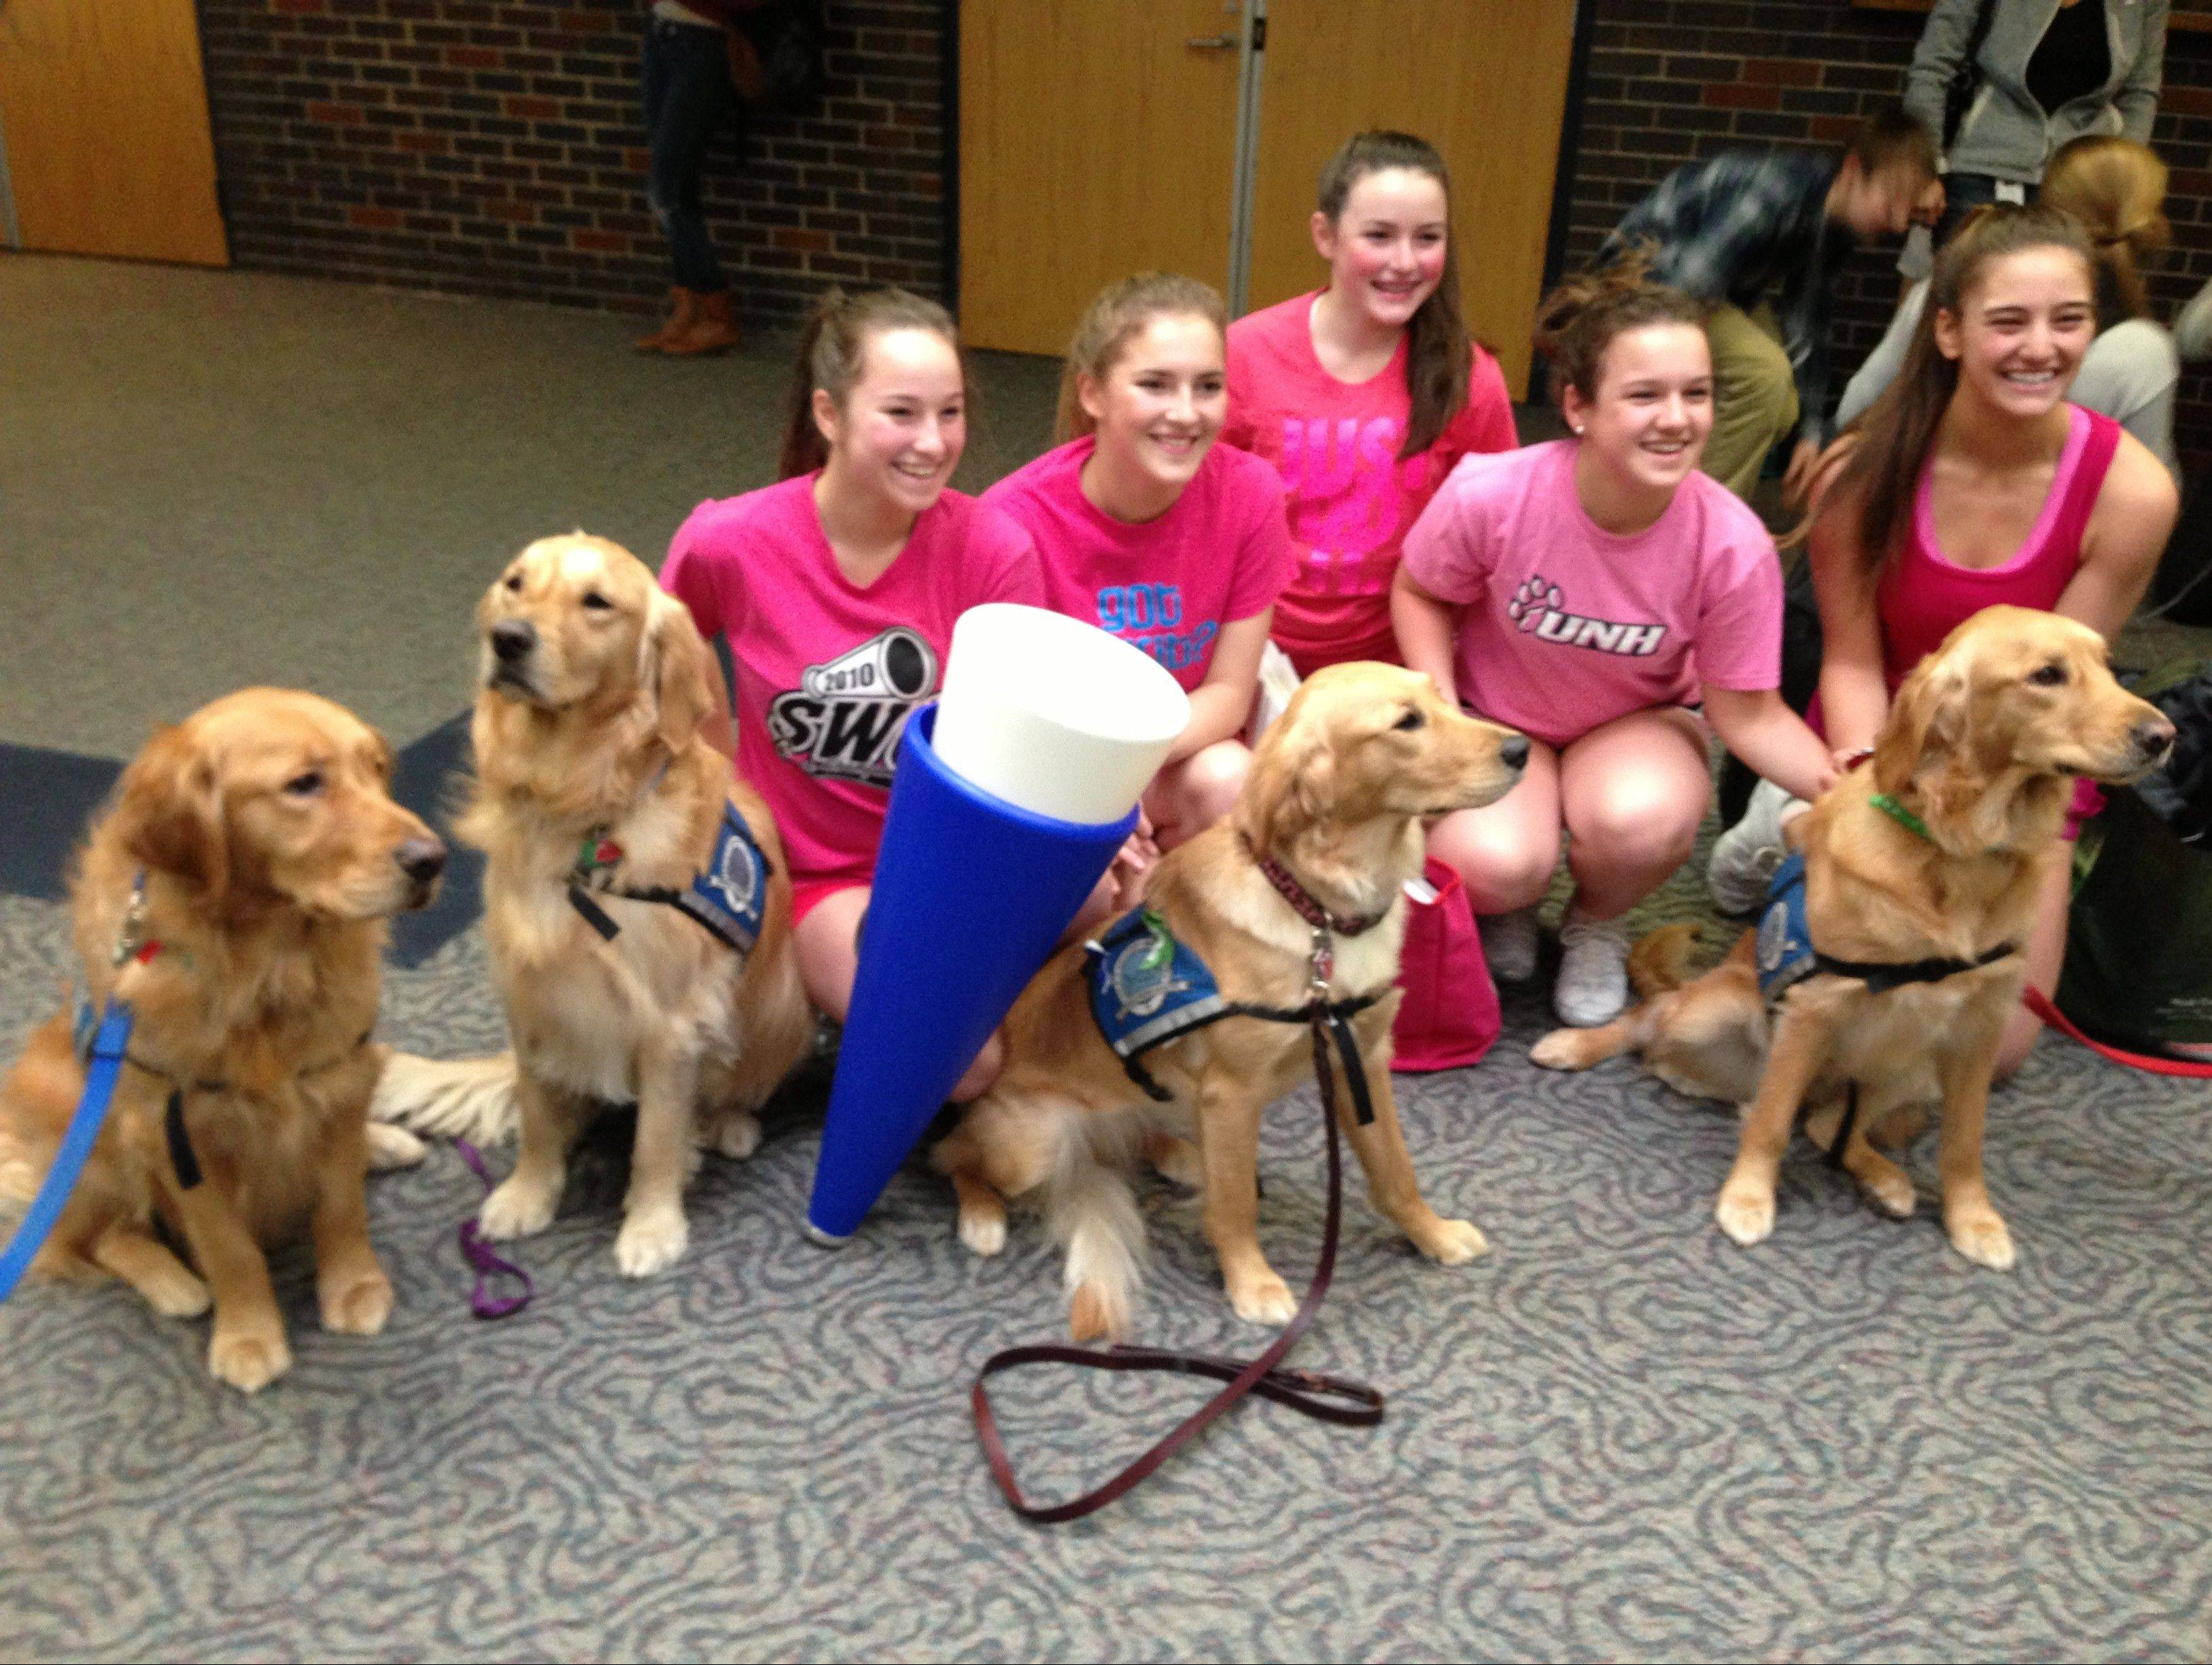 Newtown High School cheerleaders pose with comfort dogs at the school this month. They were dispatched by Addison-based Lutheran Church Charities.